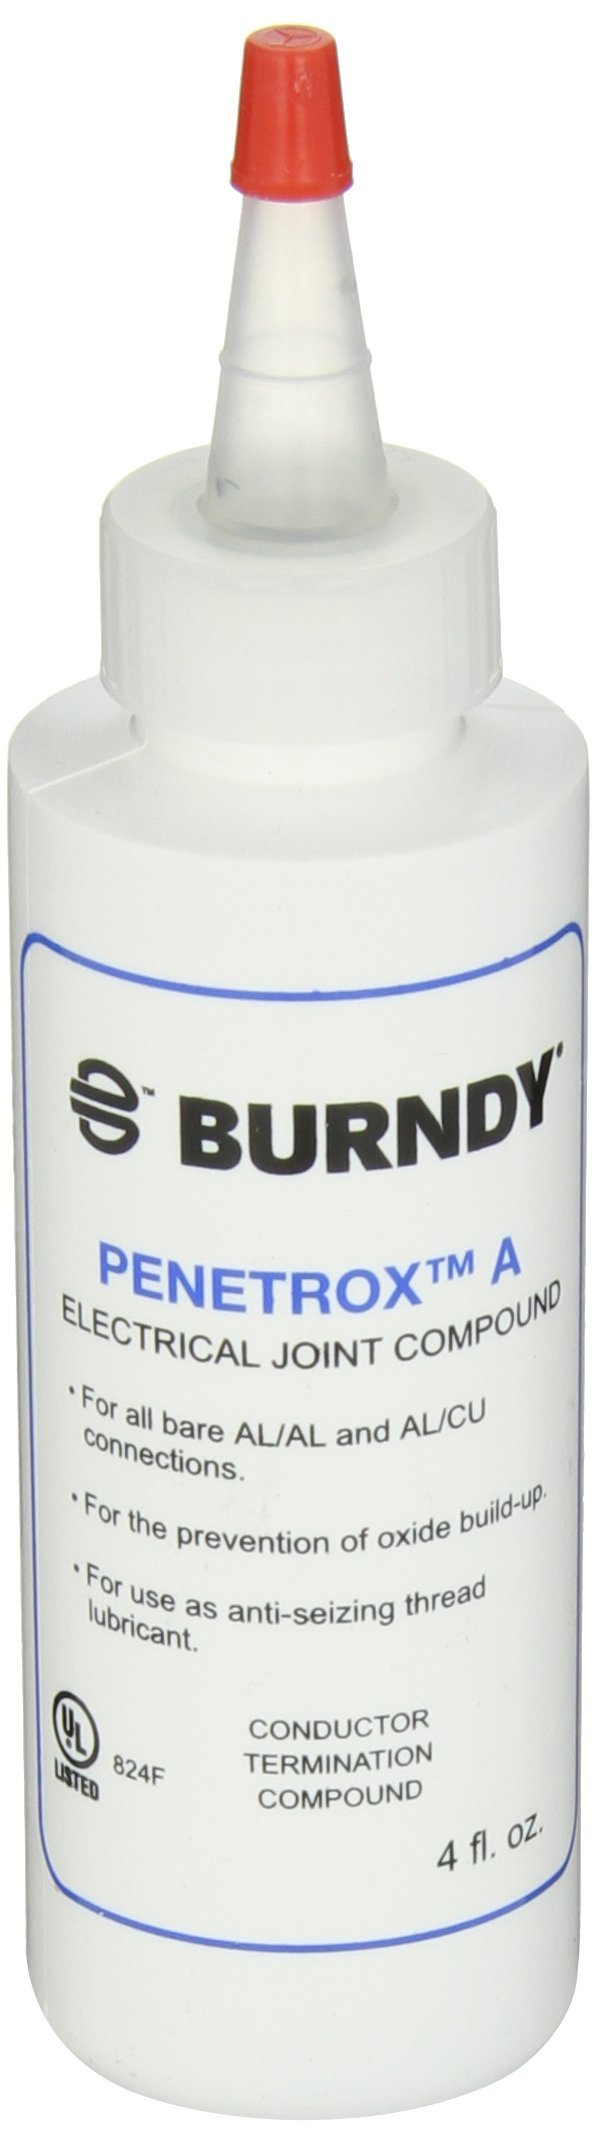 Burndy PEN A-4 Oxide-Inhibiting Joint Compounds PENETROX A, 4 oz Container Size, Squeeze Bottle Container Type